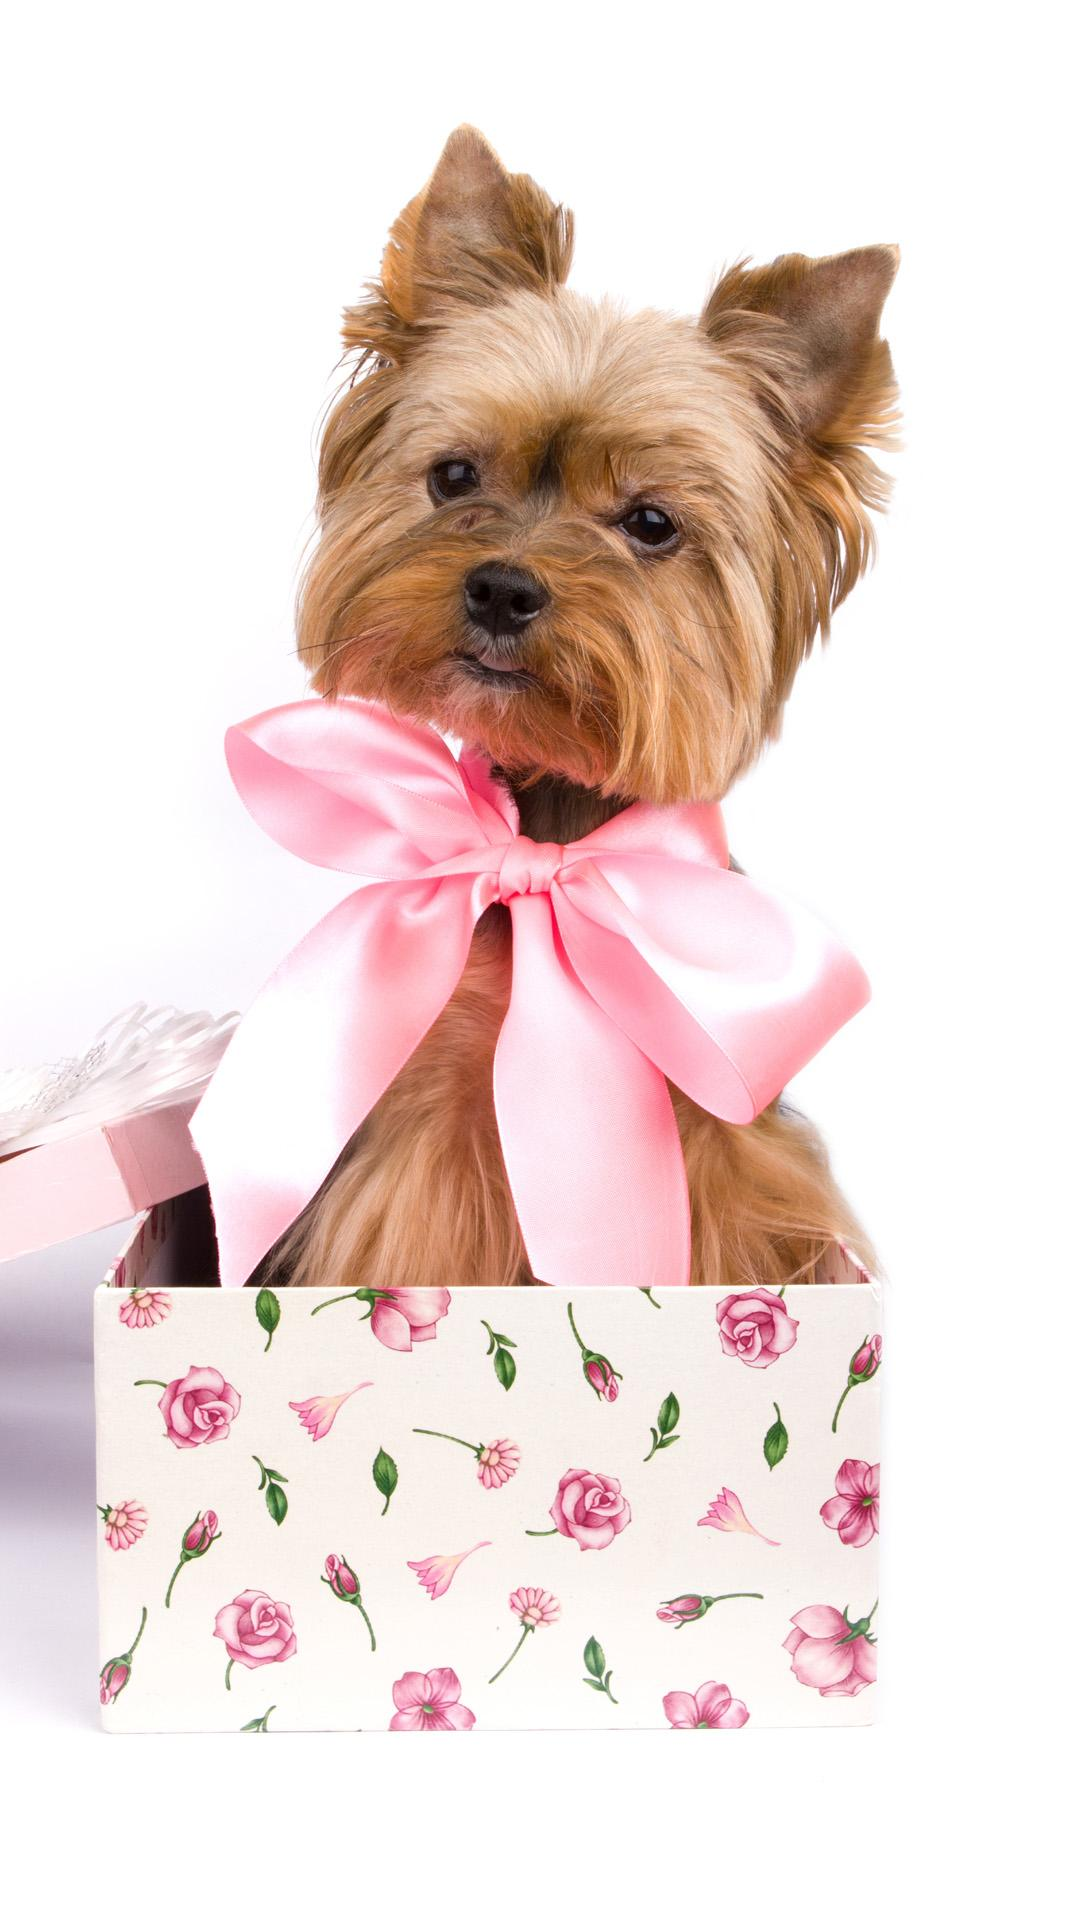 Puppy Gift Wallpapers Wallpaper Cave